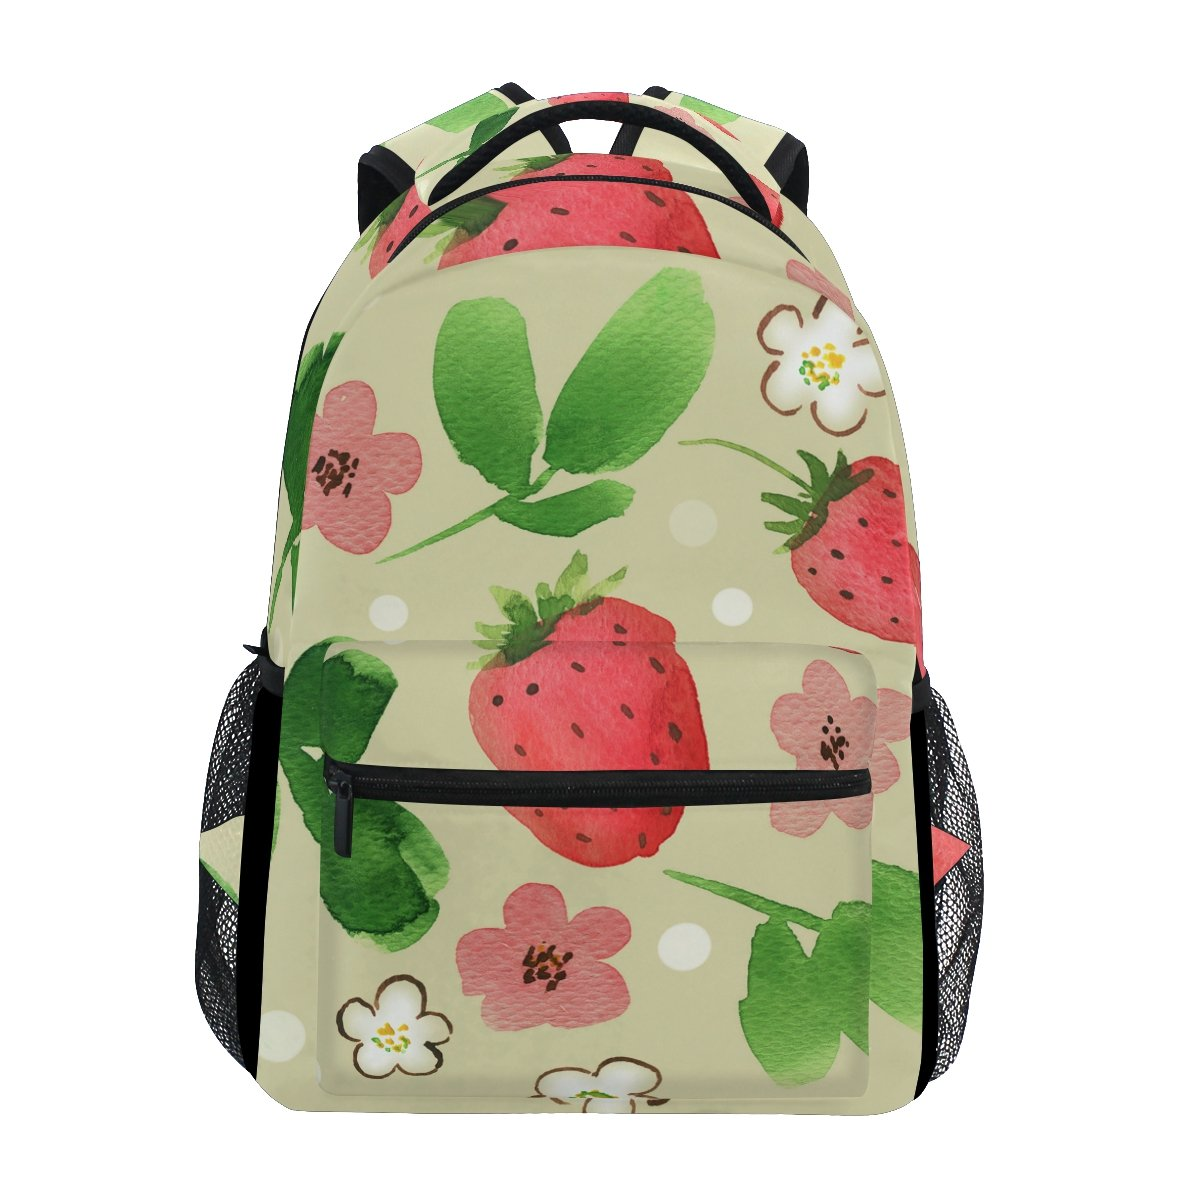 Amazon.com: TropicalLife Strawberry Pattern Backpacks School Bookbag Shoulder Backpack Hiking Travel Daypack Casual Bags: Computers & Accessories